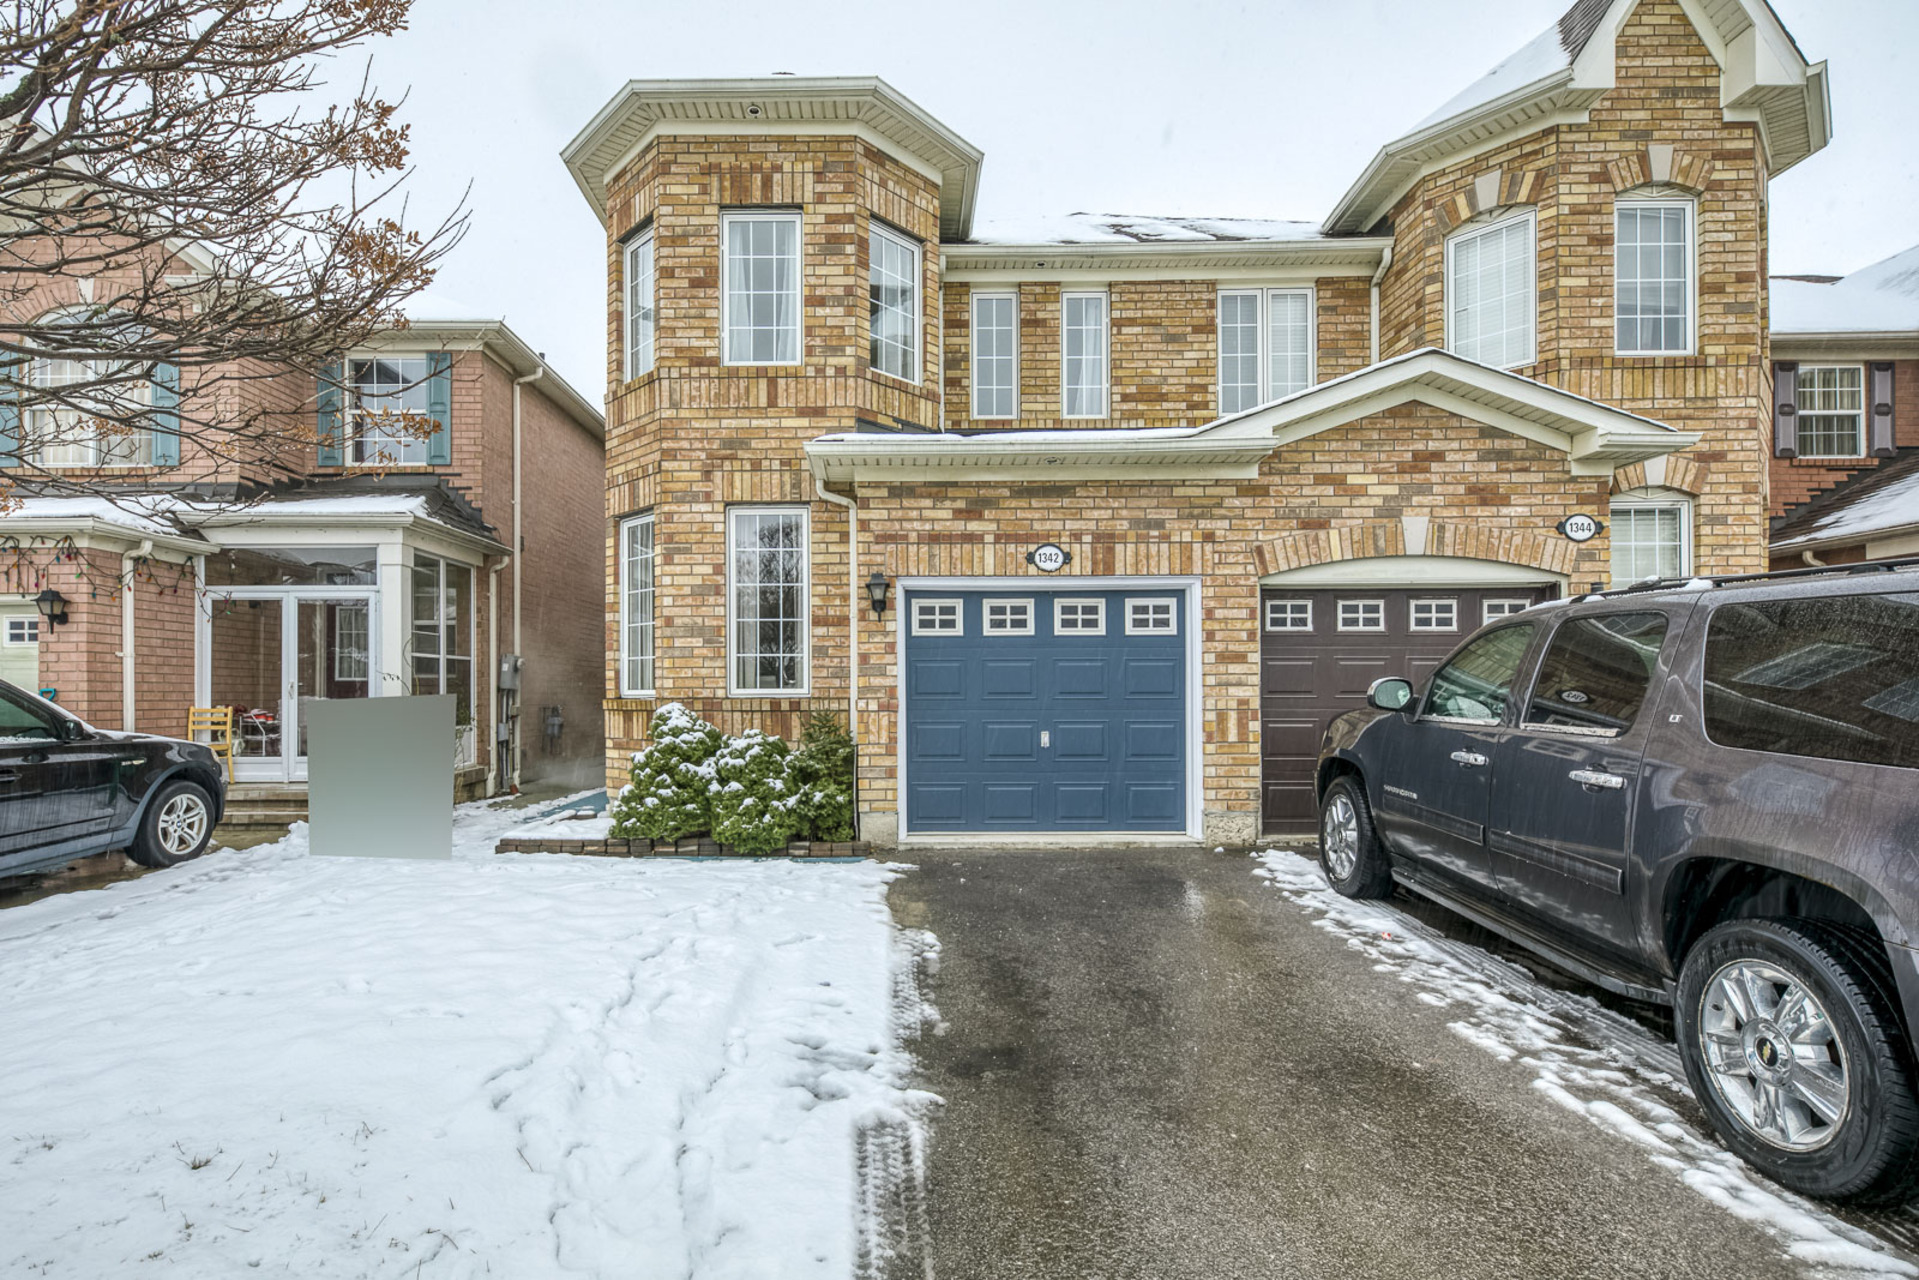 Exterior - 1342 Weir Chase, Mississauga - Elite3 & Team at 1342 Weir Chase, East Credit, Mississauga